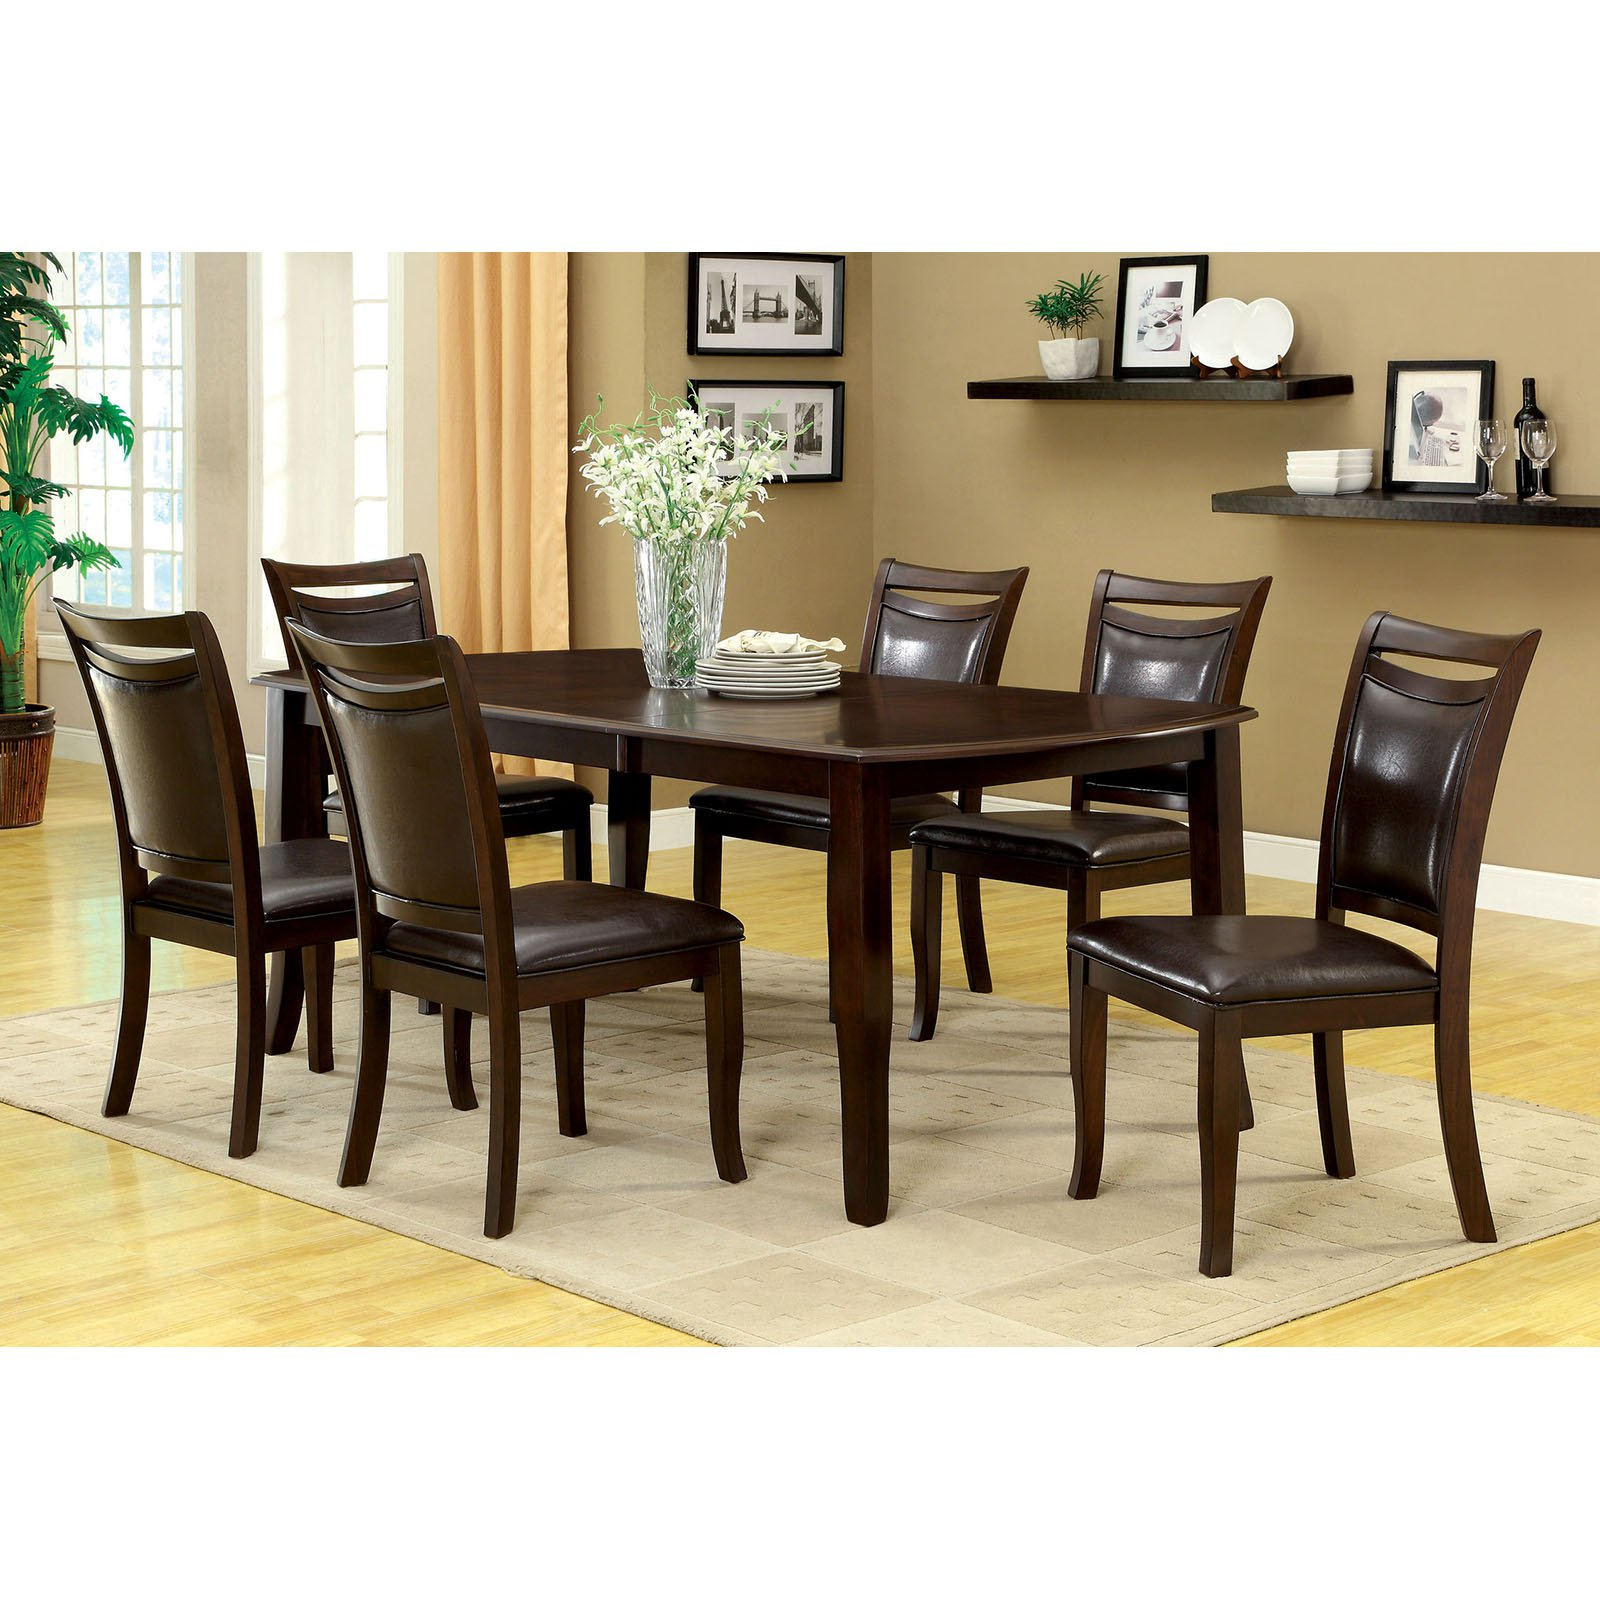 Furniture Of America Precance 7 Piece Dining Table Set Espresso